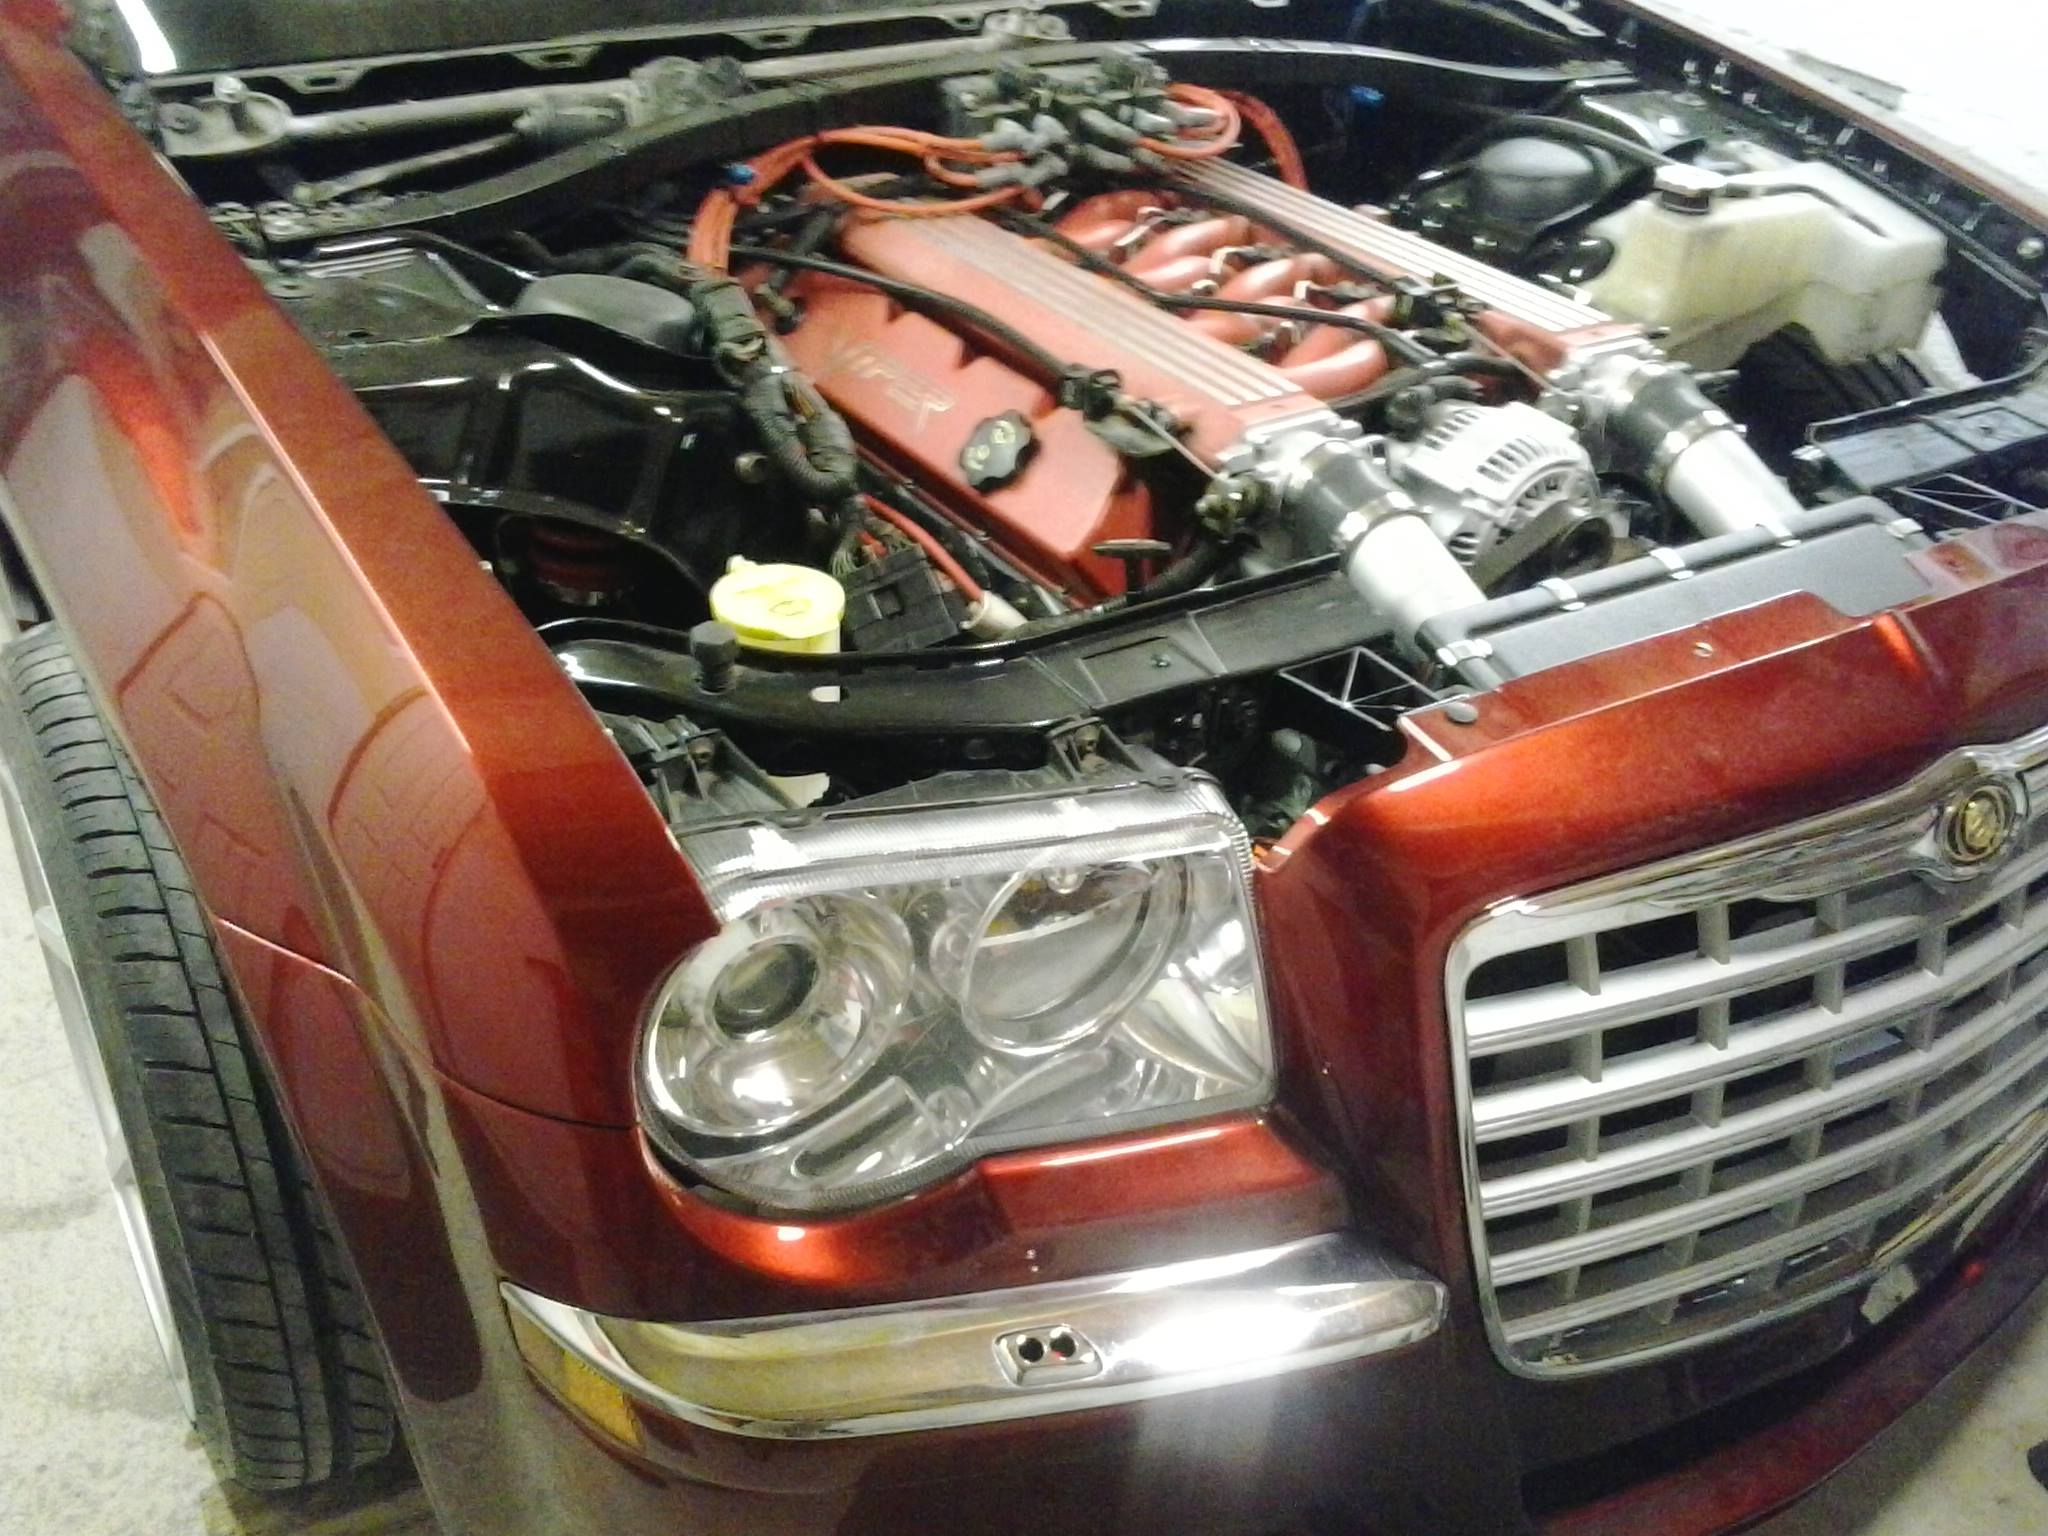 Chrysler 300C with a Viper V10 05 chrysler 300c with a viper v10 engine swap depot  at mifinder.co